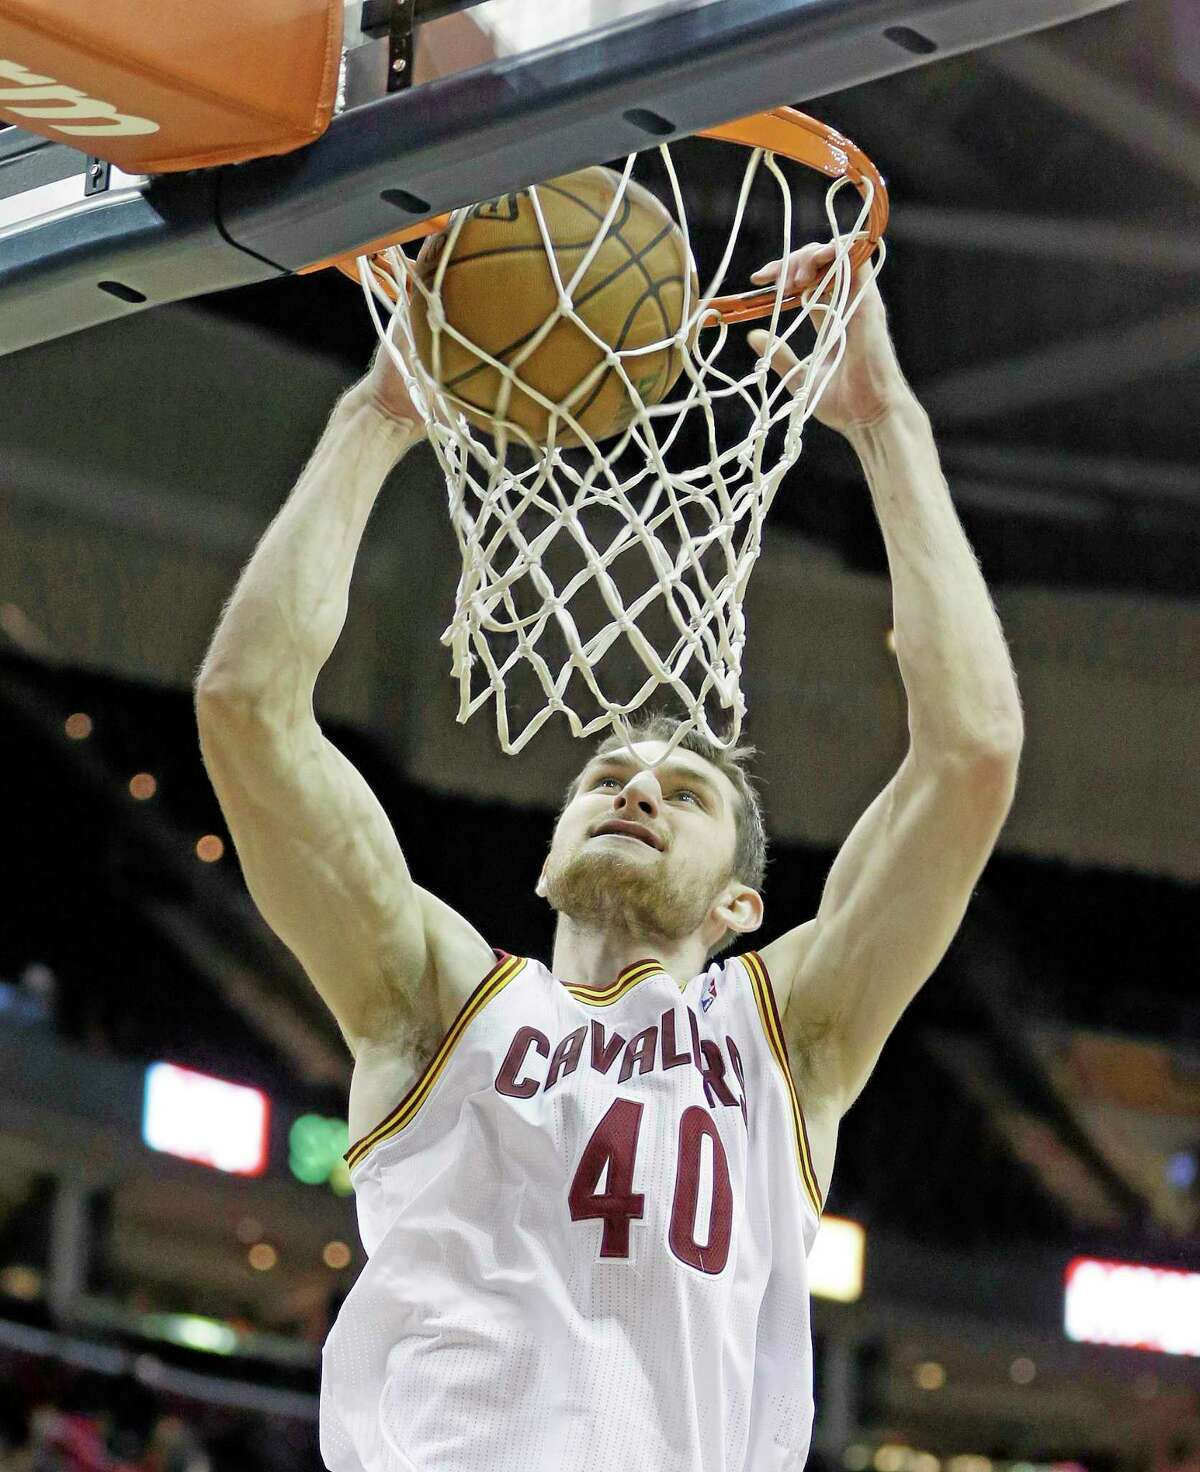 The Boston Celtics received Tyler Zeller, Marcus Thornton and a first-round pick in a three-team trade on Wednesday. The Cleveland Cavaliers agreed to trade guard Jarrett Jack, swingman Sergey Karasev and Zeller, moves that can help their pursuit of LeBron James by clearing salary cap space. The Brooklyn Nets would get Jack and Karasev.